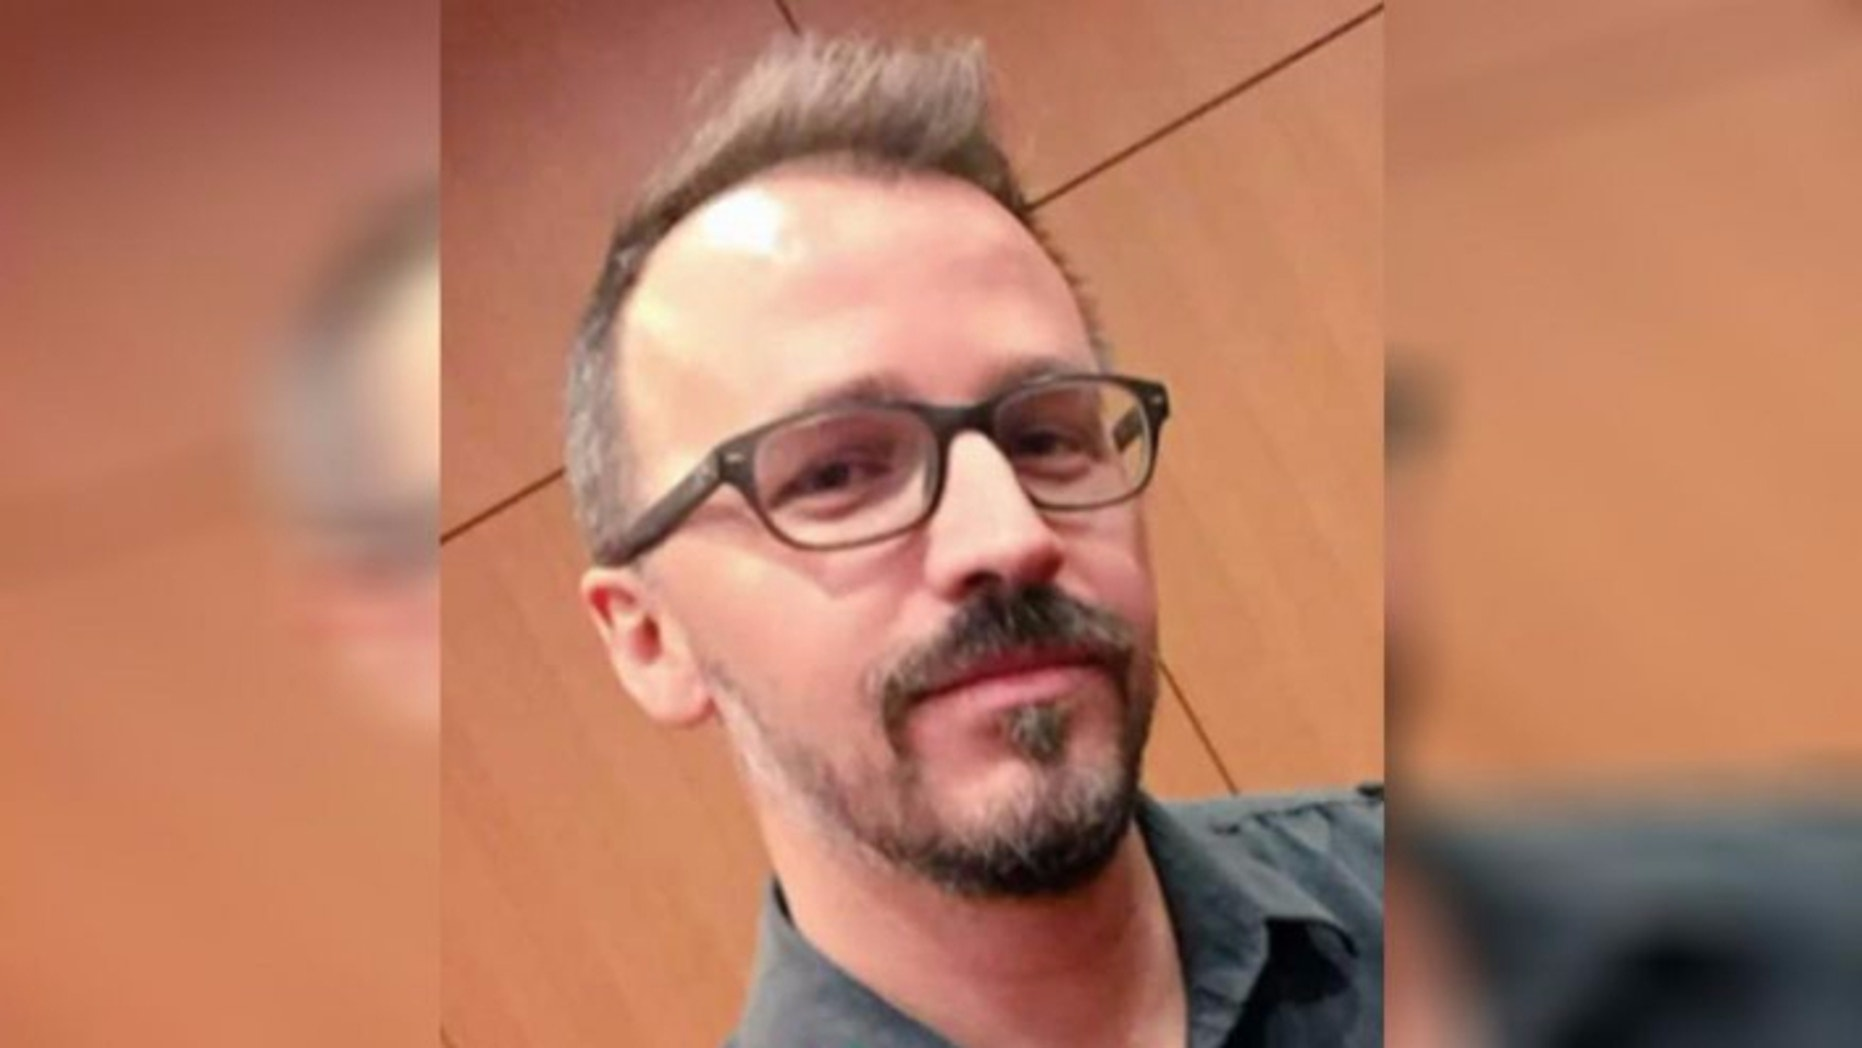 Drexel professor George Ciccariello-Maher was placed on administrative leave after a tweetstorm about the Las Vegas shooting.